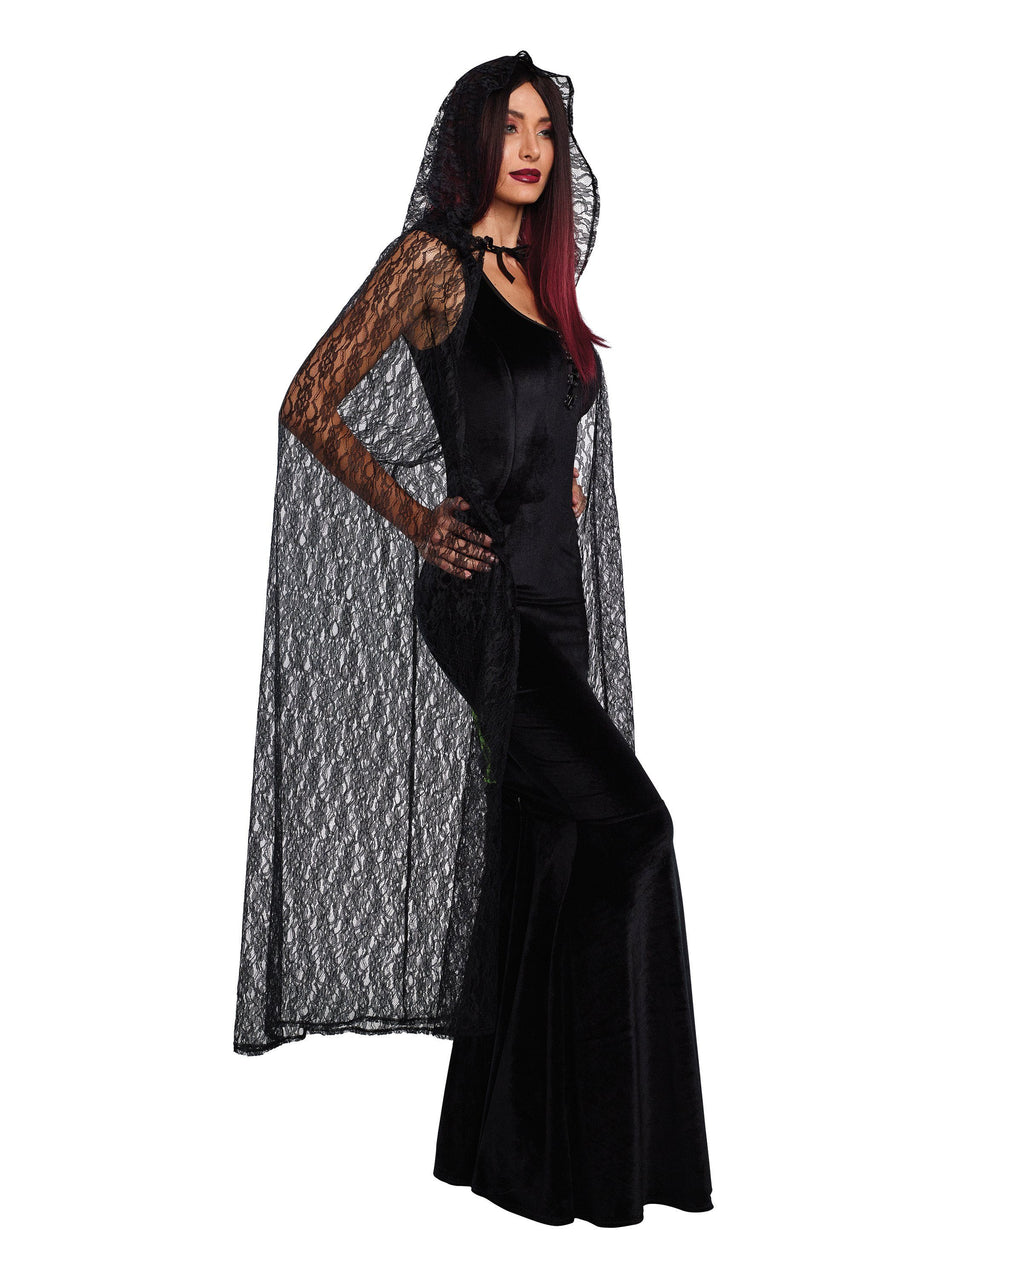 Lace Cape with Hood Costume Accessory Dreamgirl Costume